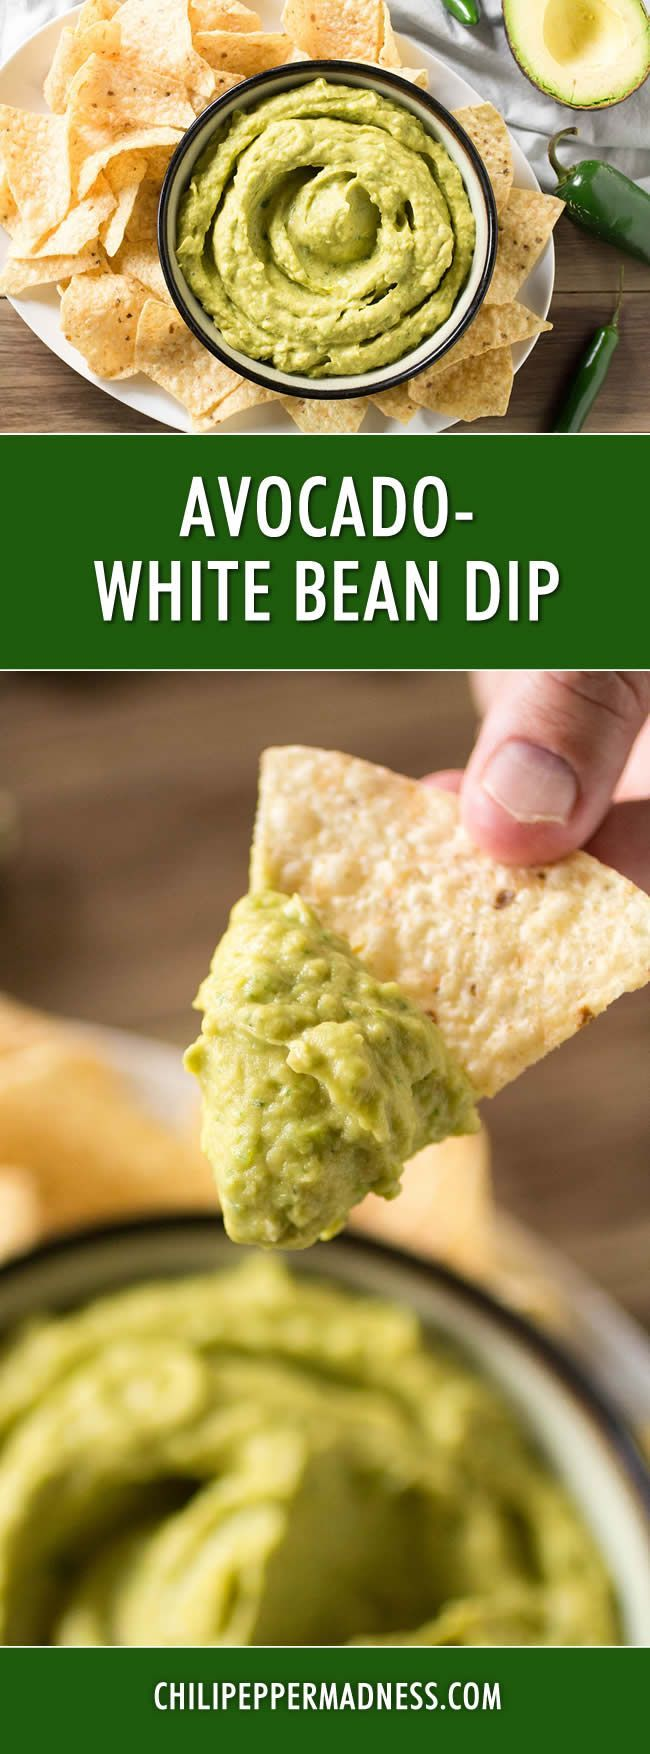 Avocado-White Bean Dip - This spicy bean dip recipe made with white beans and avocado is so creamy, you might be forgiven to think it is the next big thing in guacamole. Quick and easy, perfect for last-minute party apps.